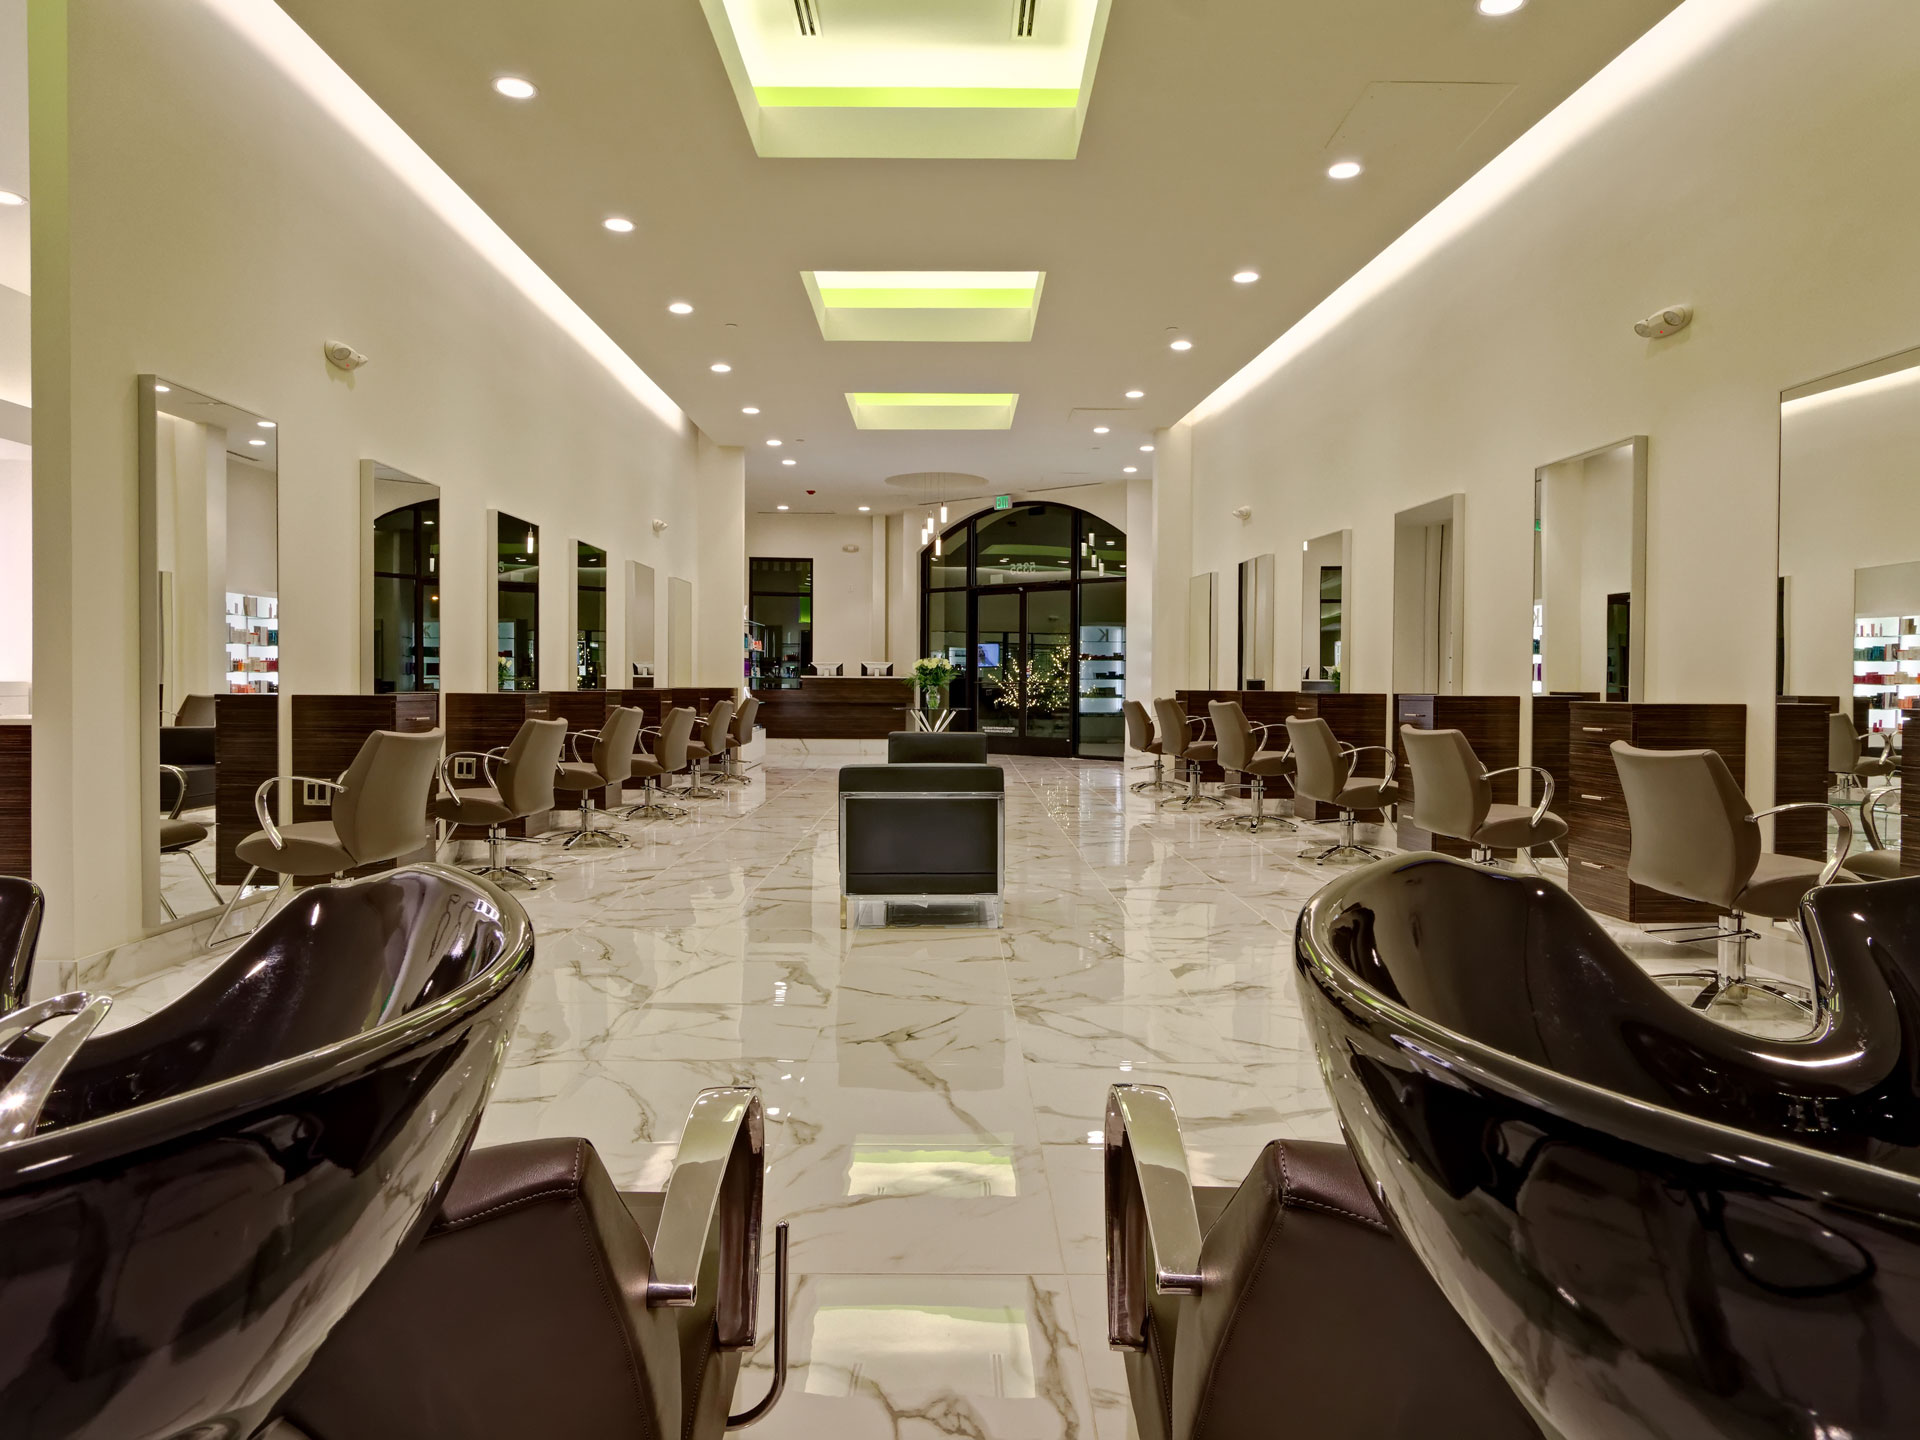 Aalam best hair salon frisco tx men women high end for Aalam salon prices